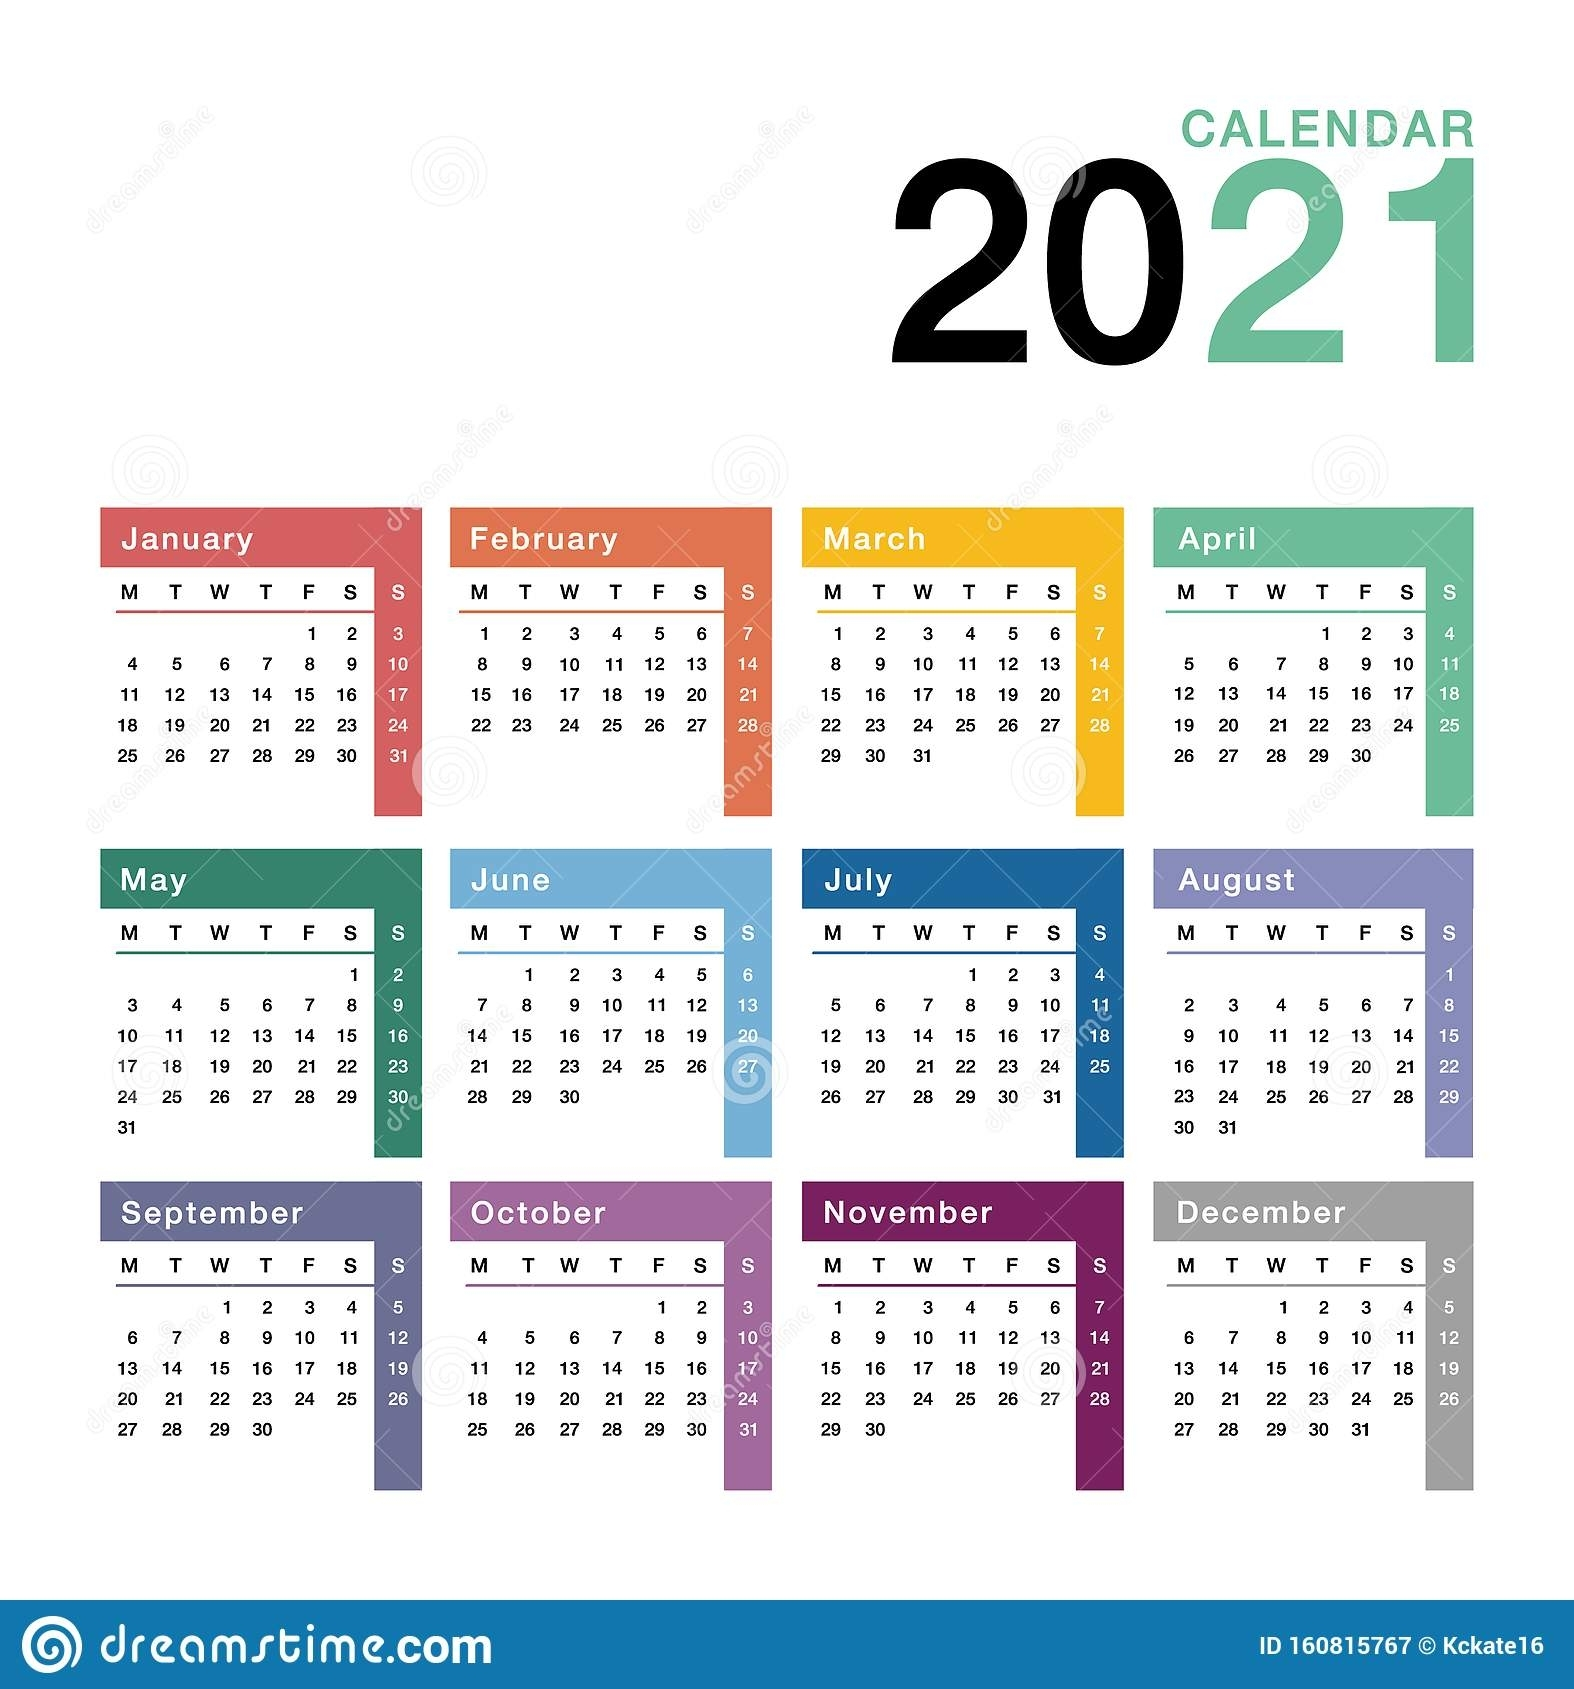 Colorful Year 2021 Calendar Vector Design Template, Simple And Clean Design. Calendar For 2021